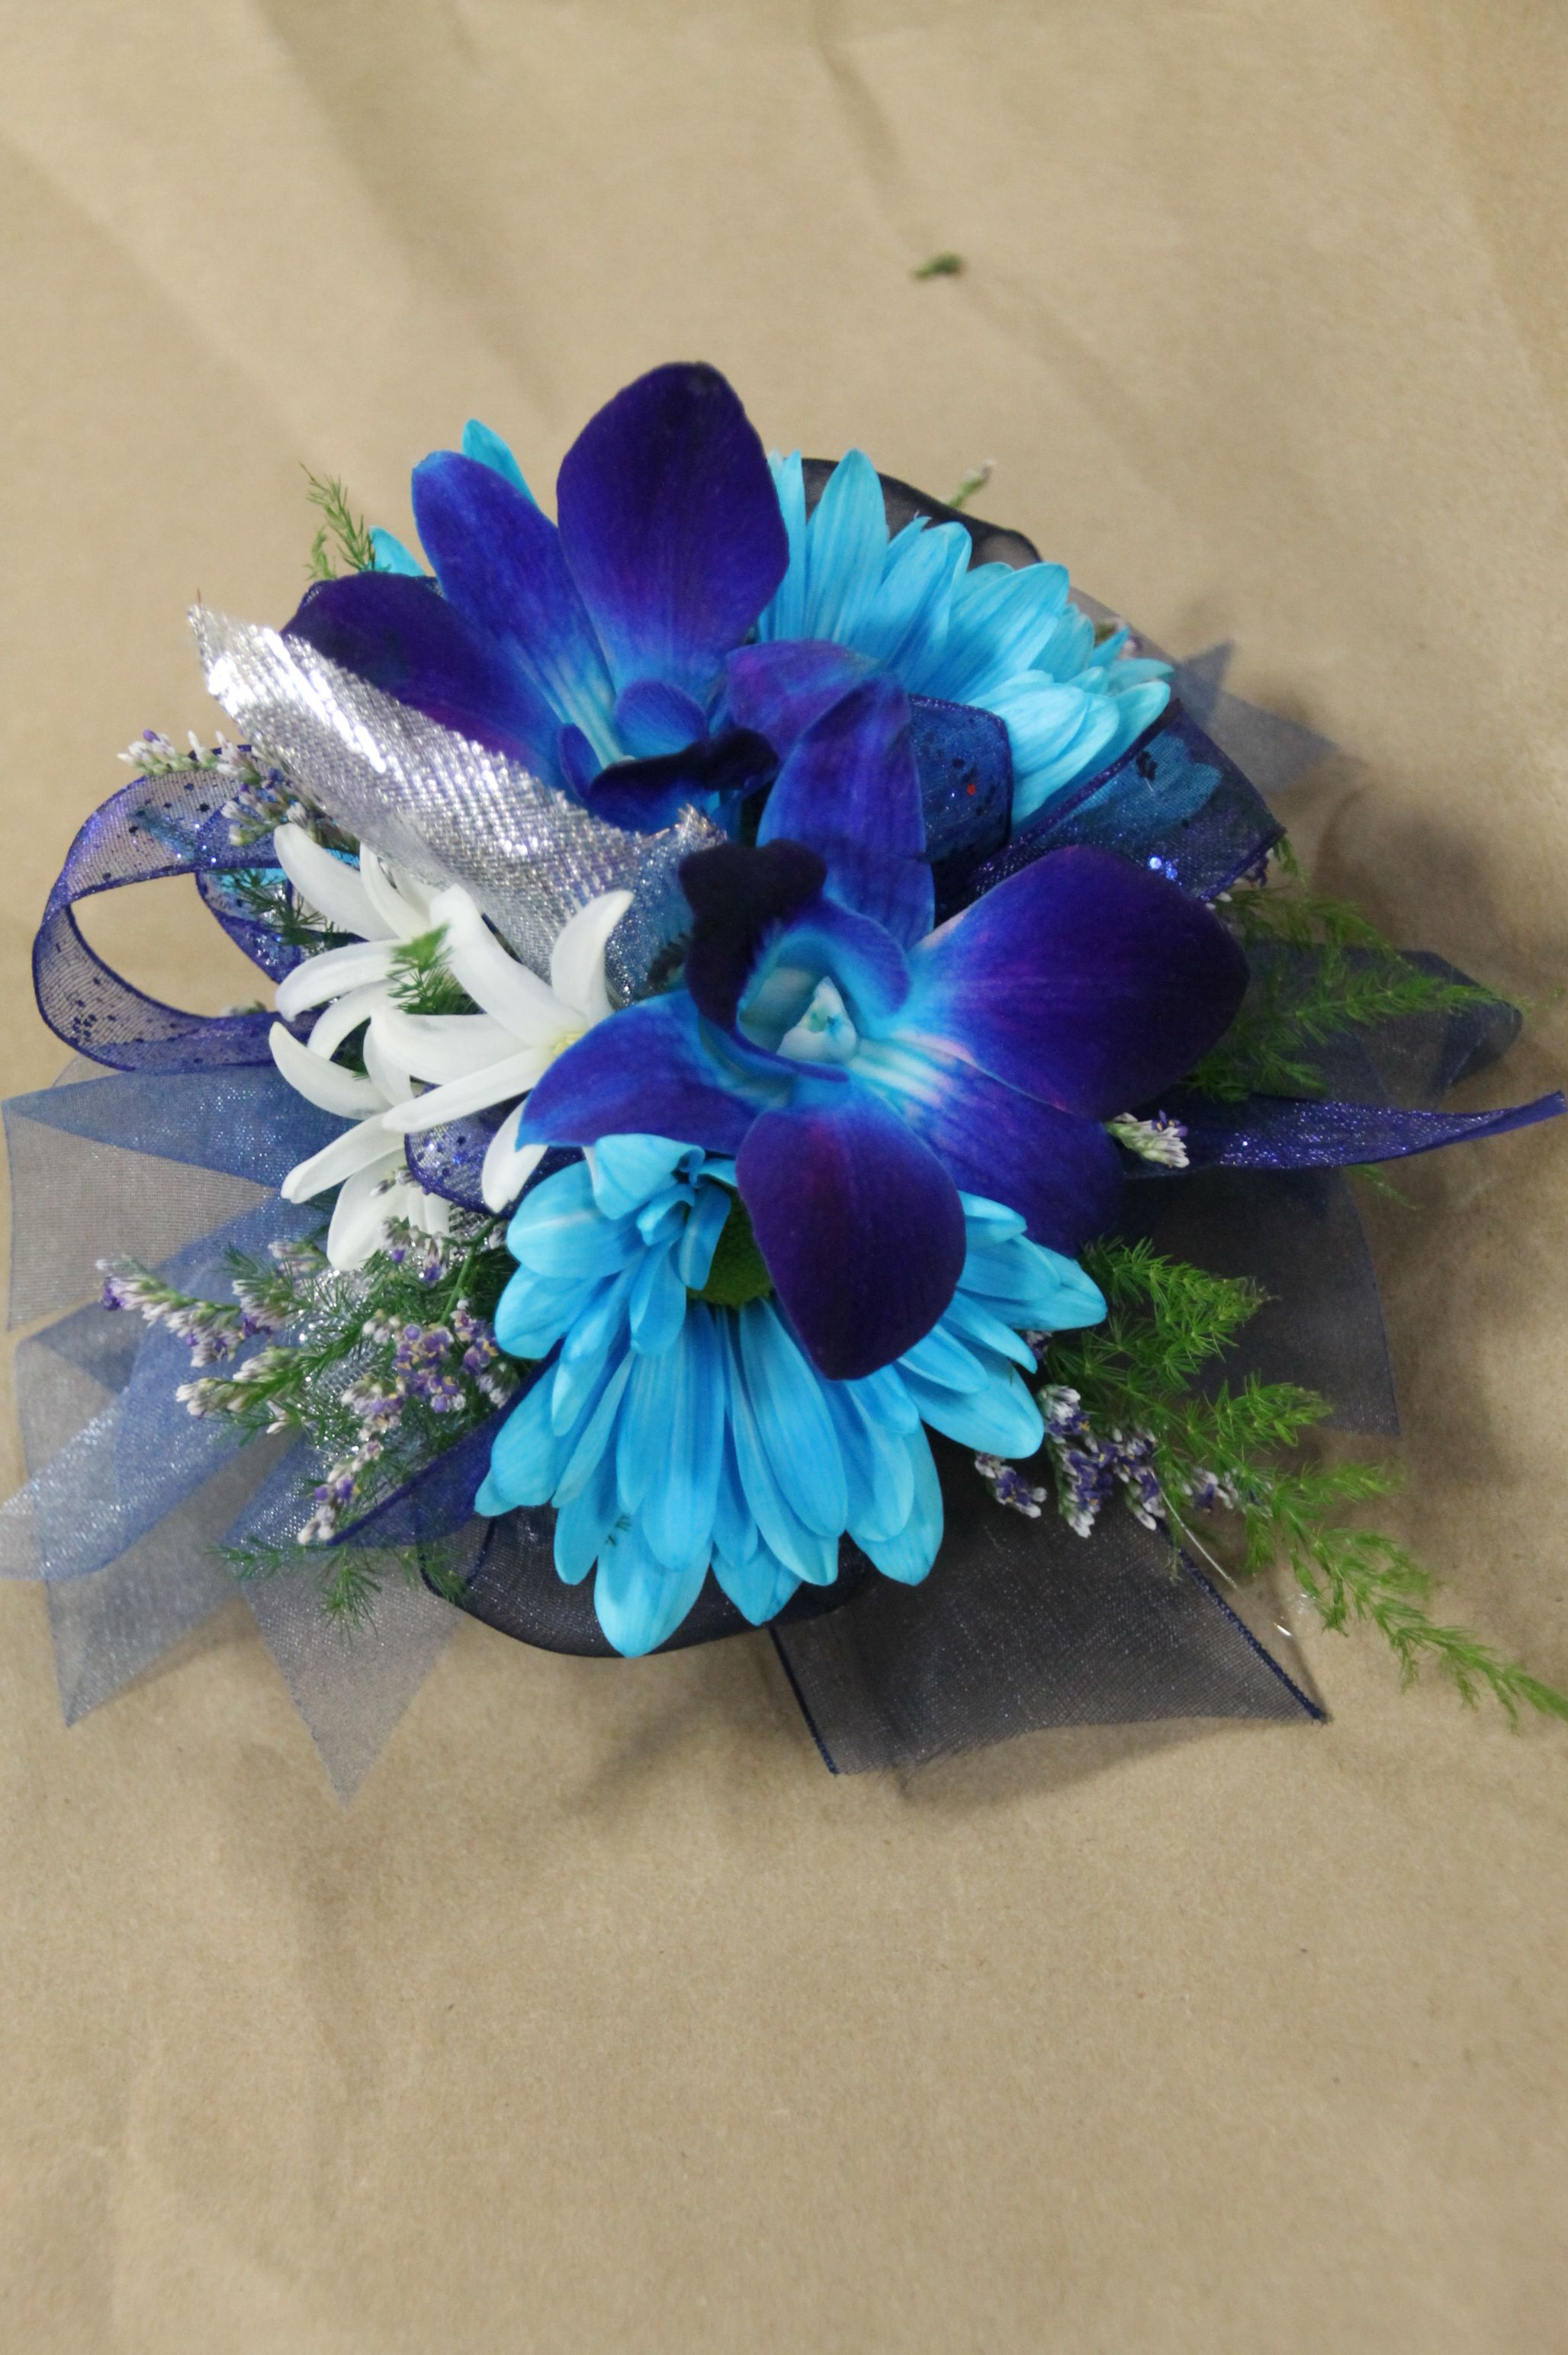 Blue dendro orchids blue daisies white hyacinths wrist corsage blue dendro orchids blue daisies white hyacinths wrist corsage for prom or weddings izmirmasajfo Gallery